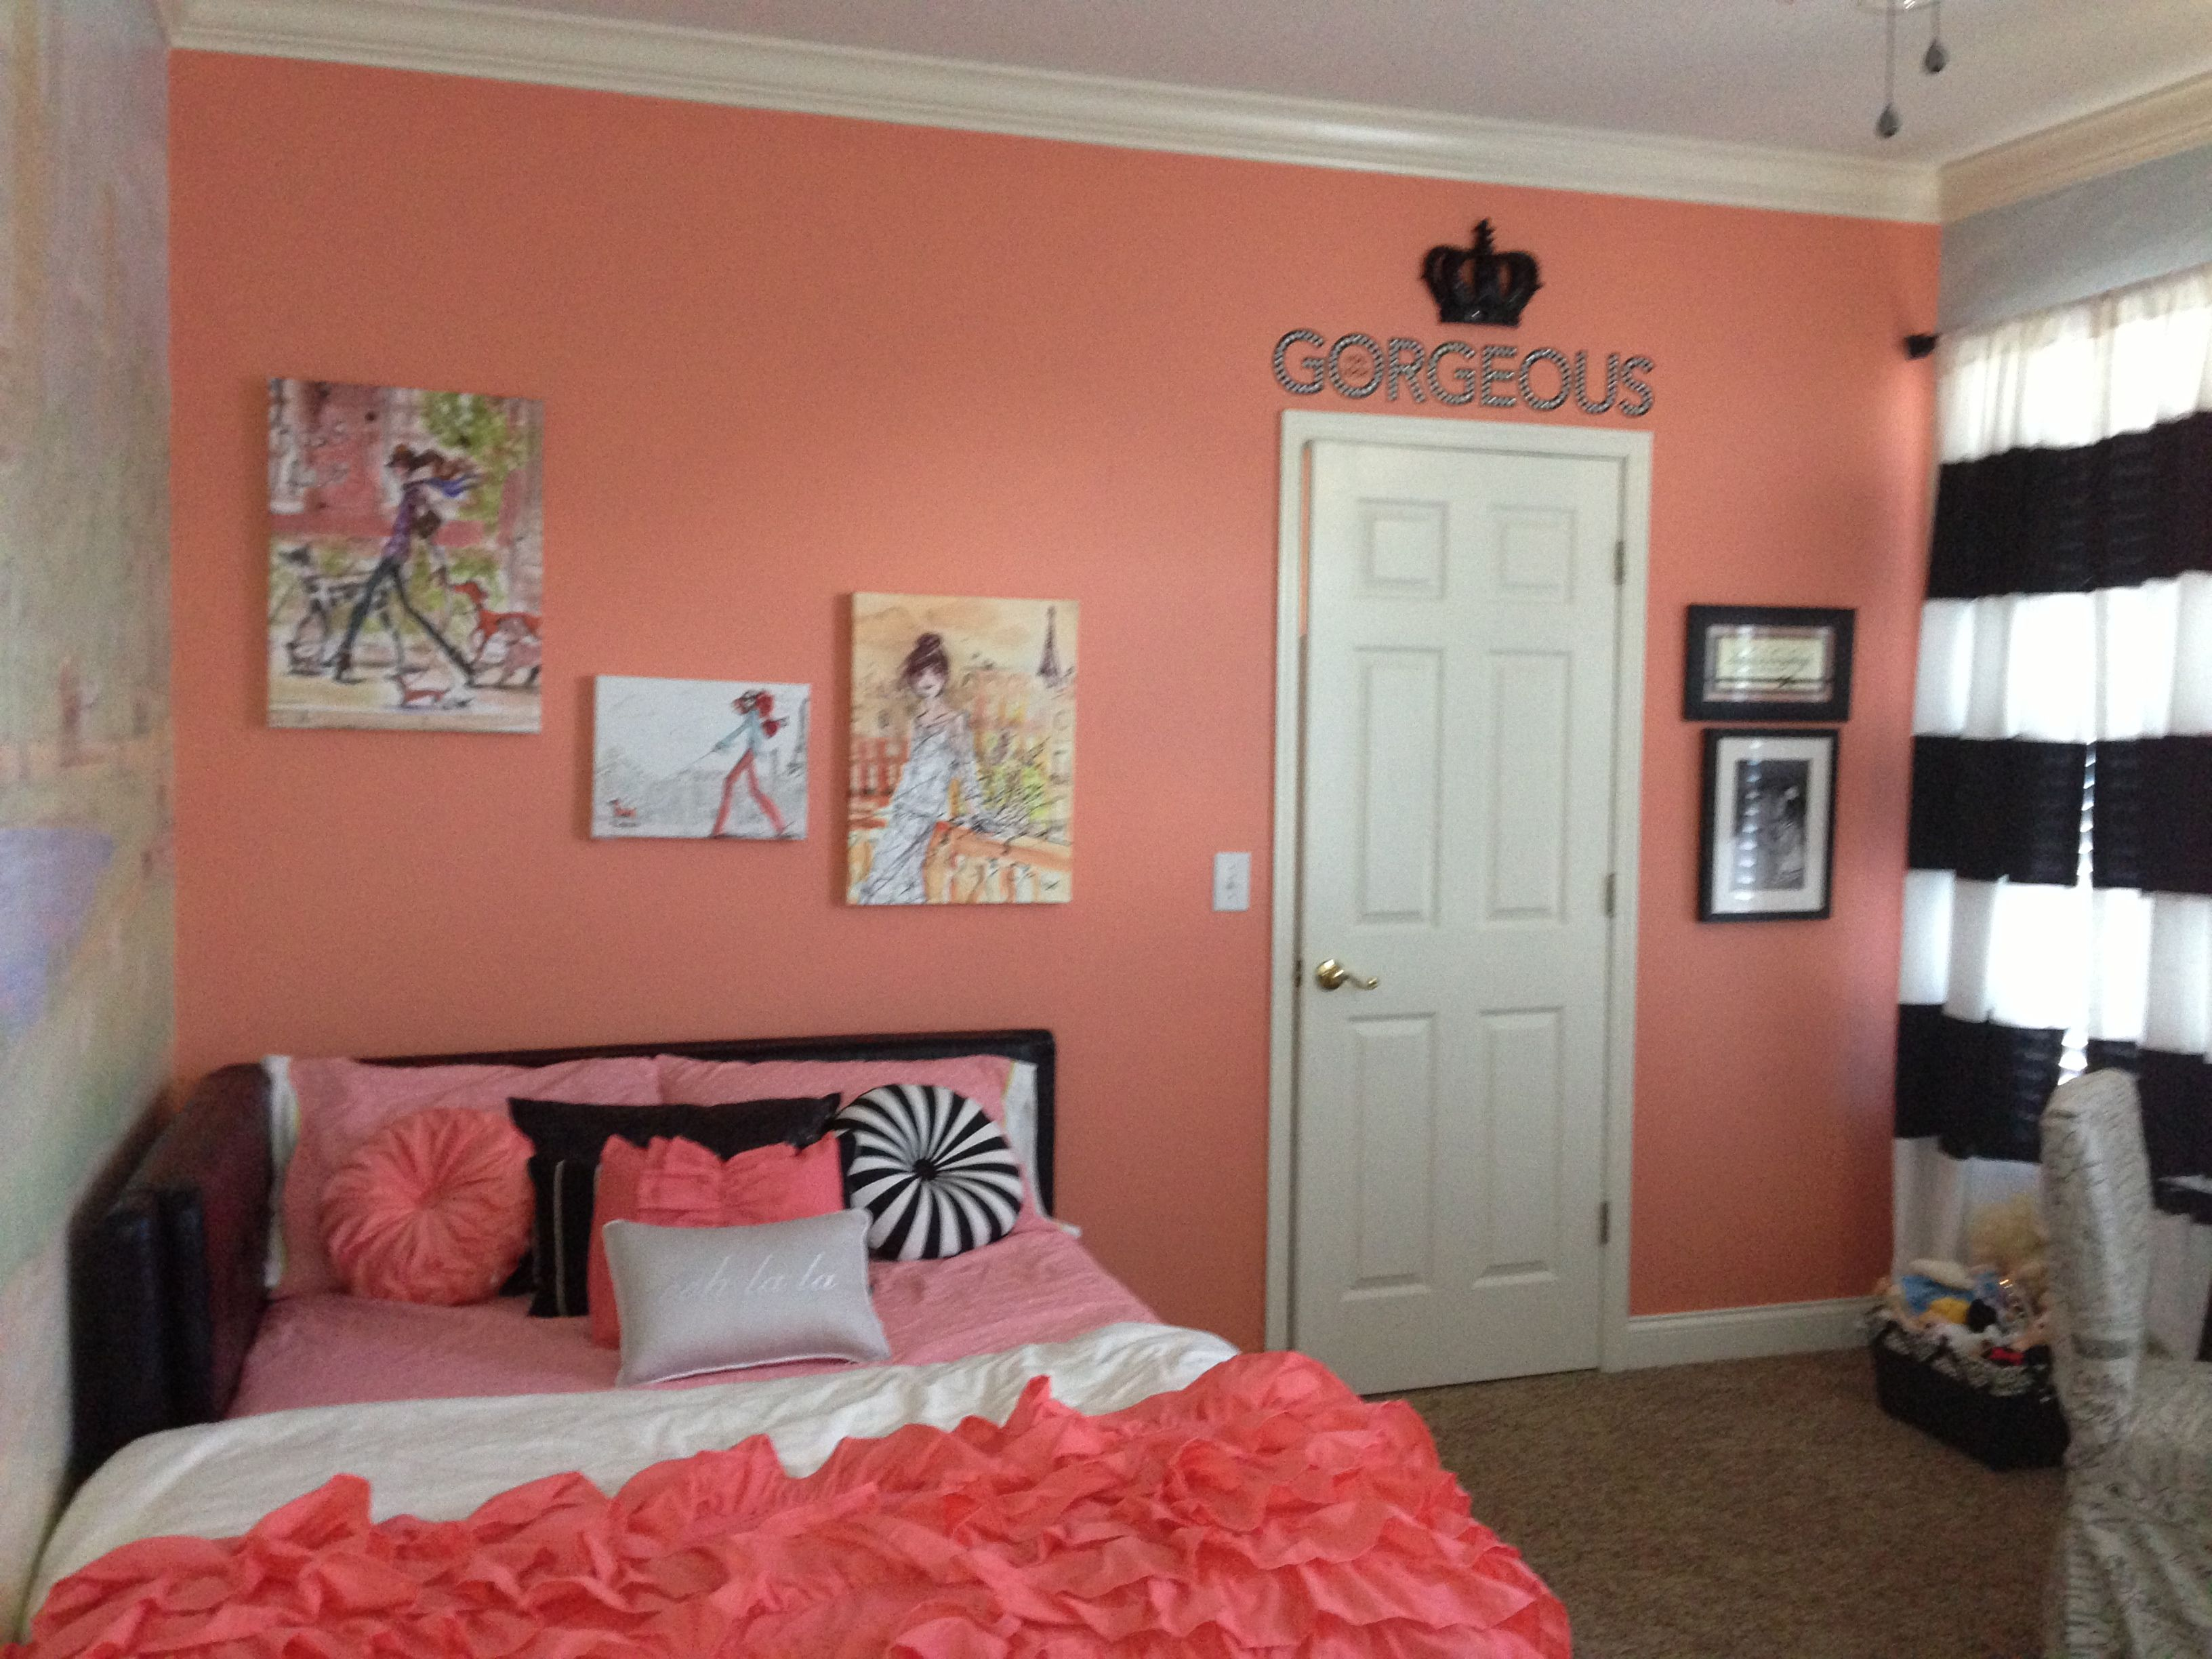 Black Coral Coral Room Decor Google Search Girls Room